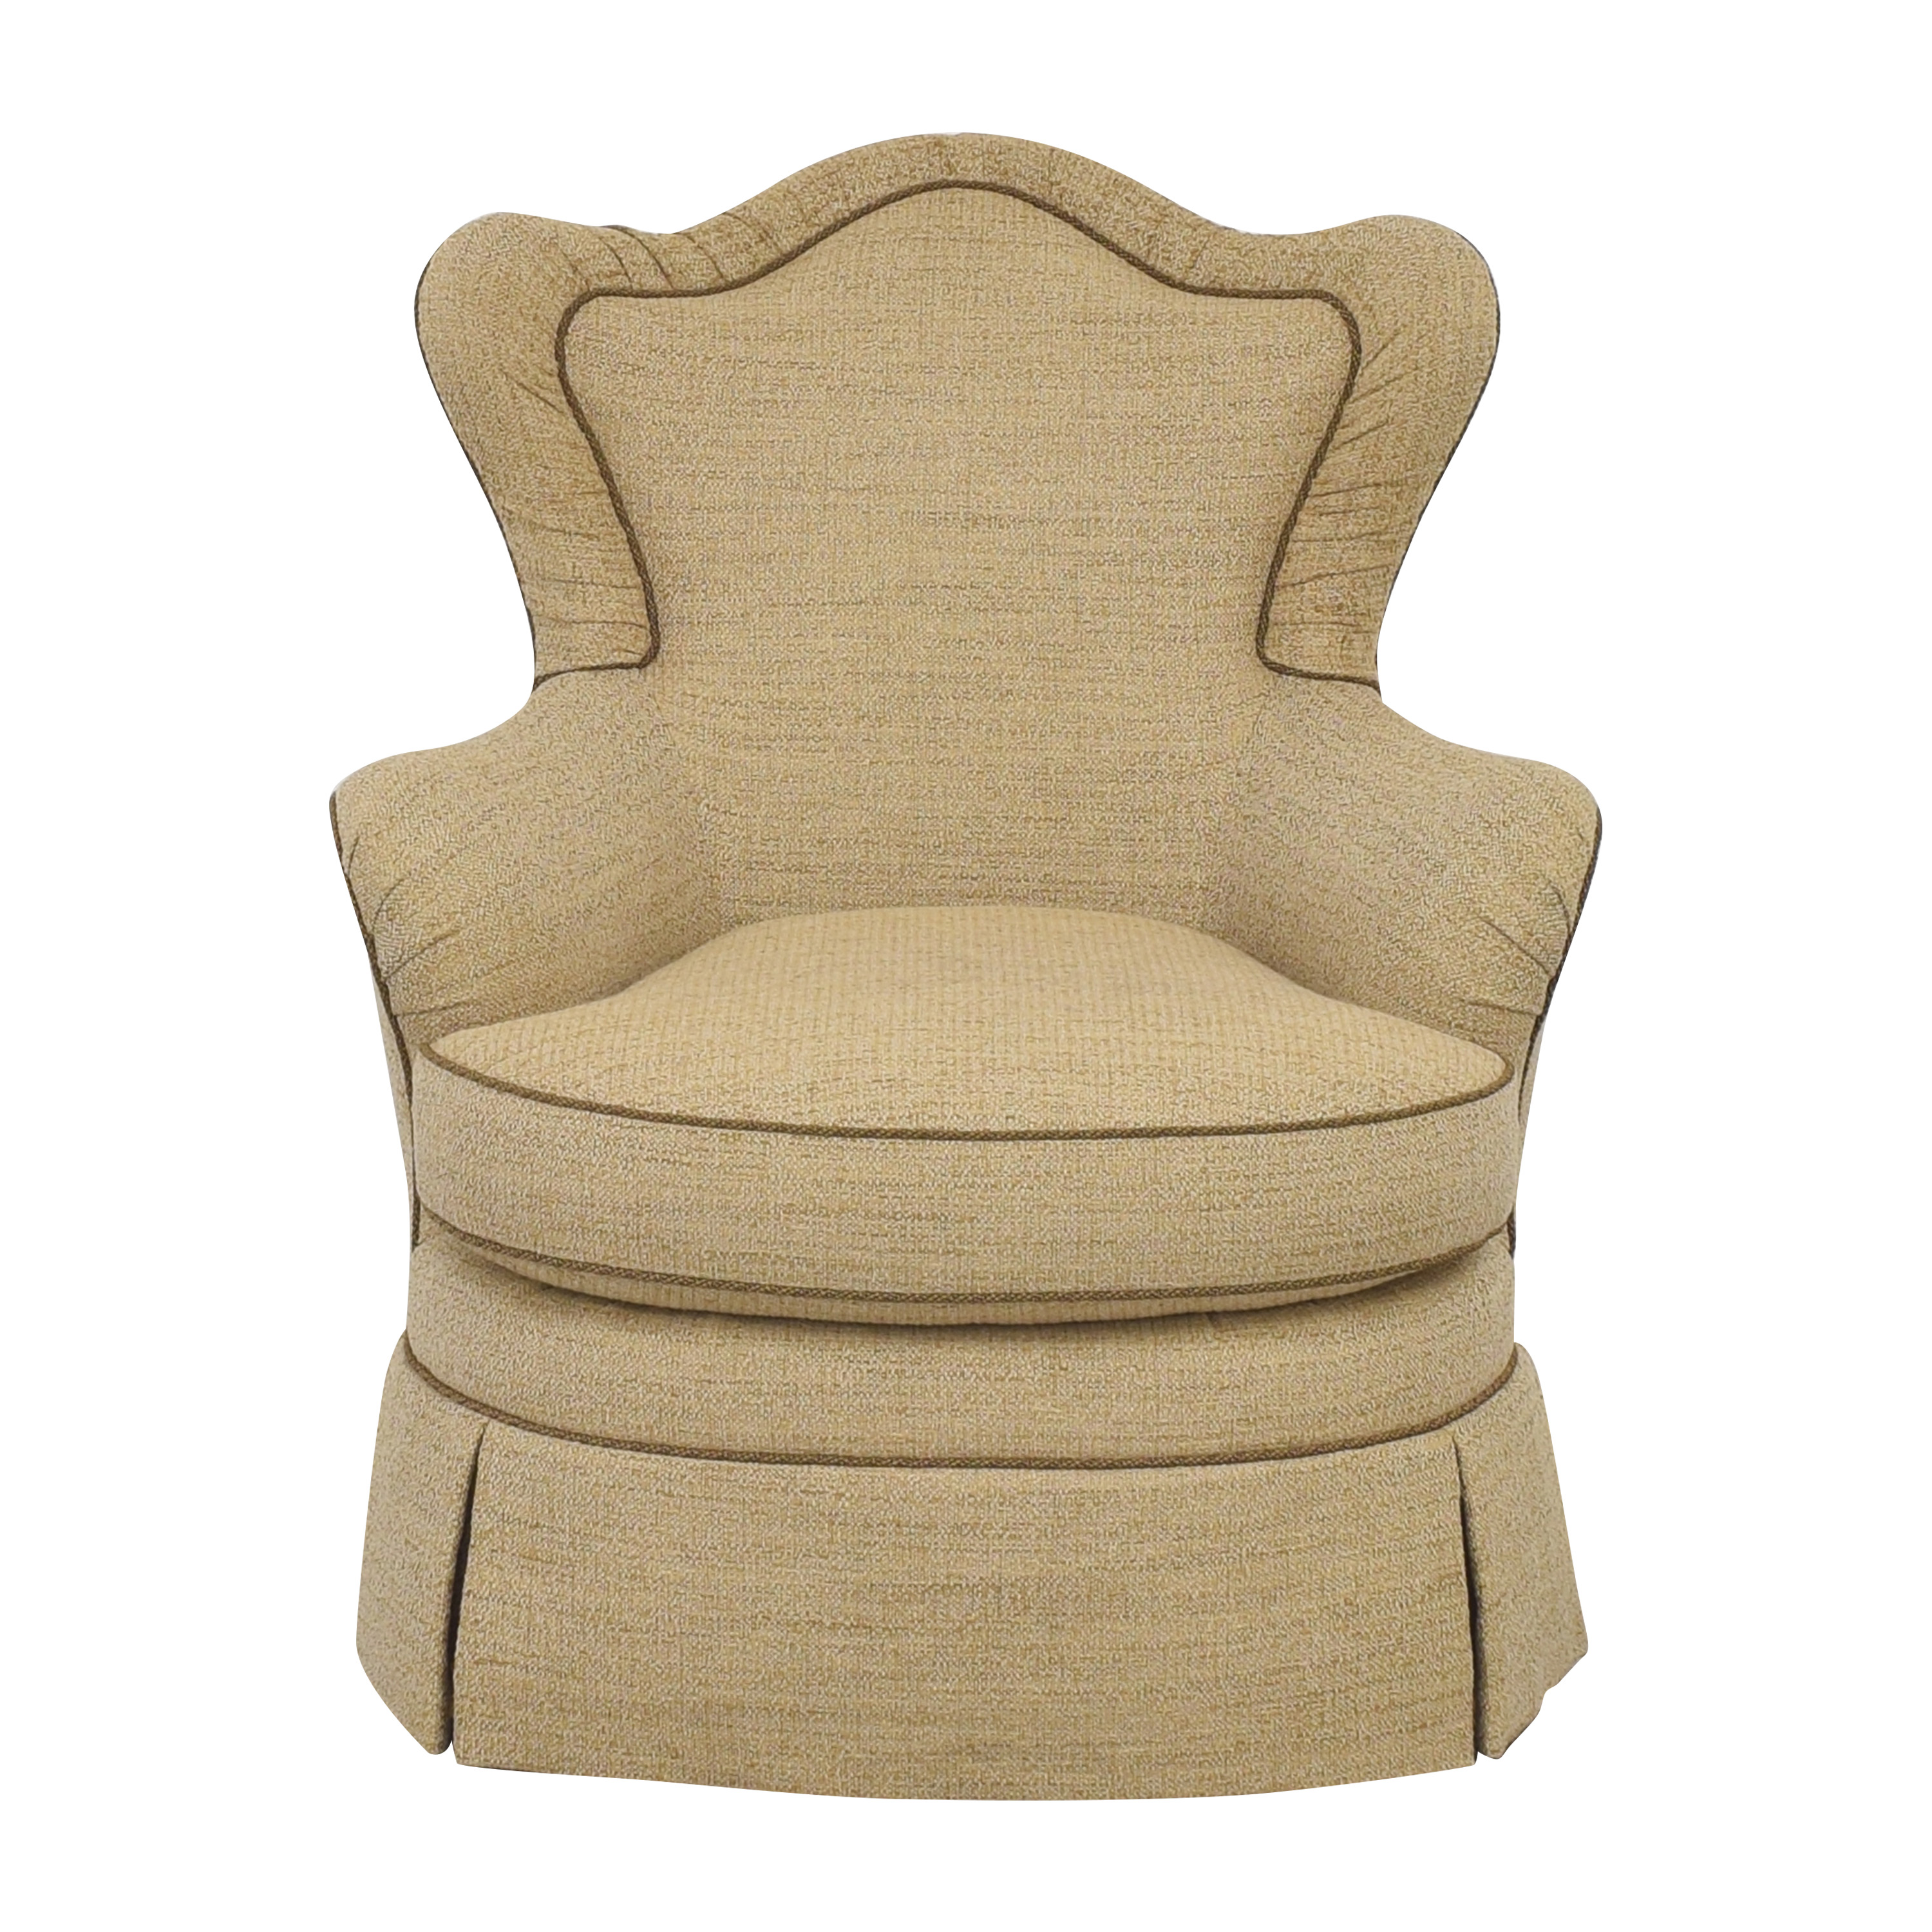 Henredon Furniture Henredon Isabella Chair Chairs